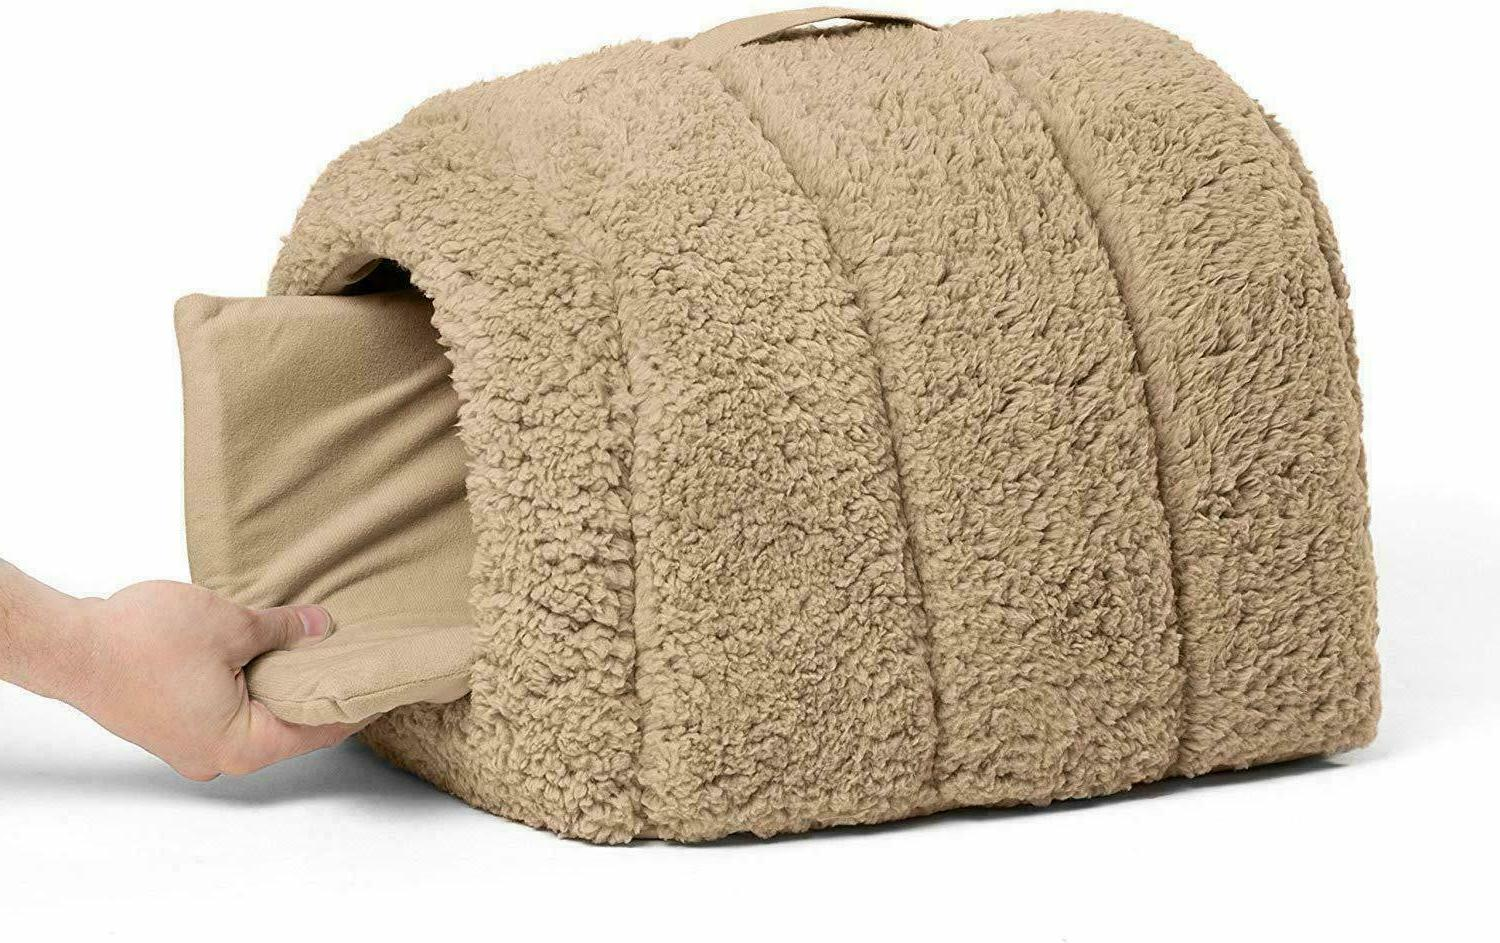 Best Pet Igloo Hut, Cat and Bed 9lbs or